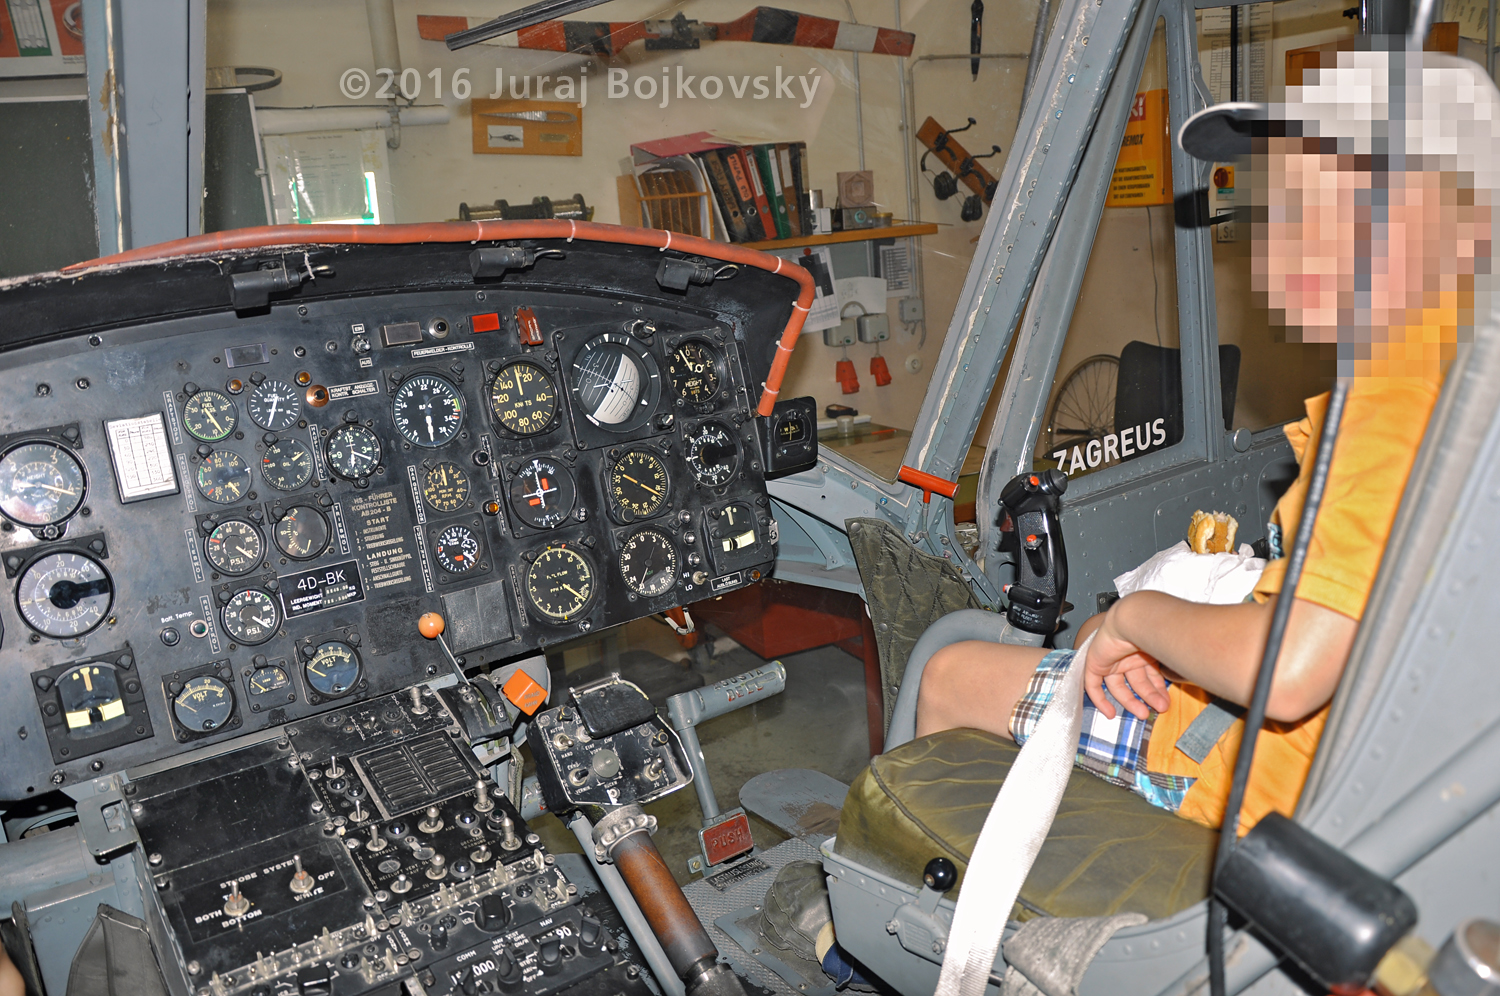 UH-1B Main Instrument panel, Right portion